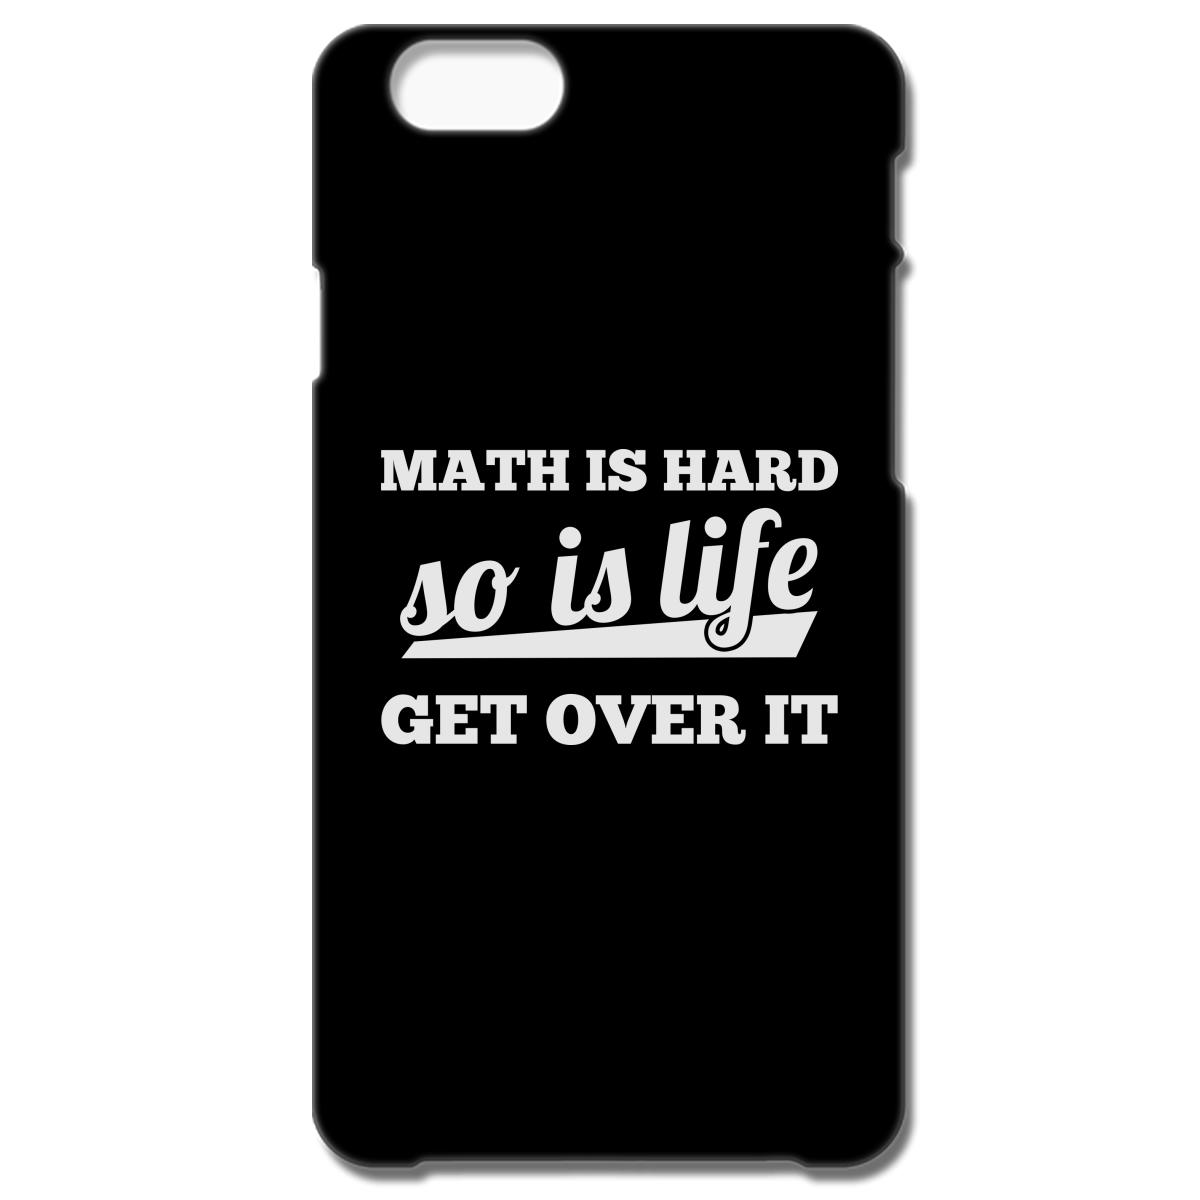 math is hard so is life get over it iphone 6/6s case | customon